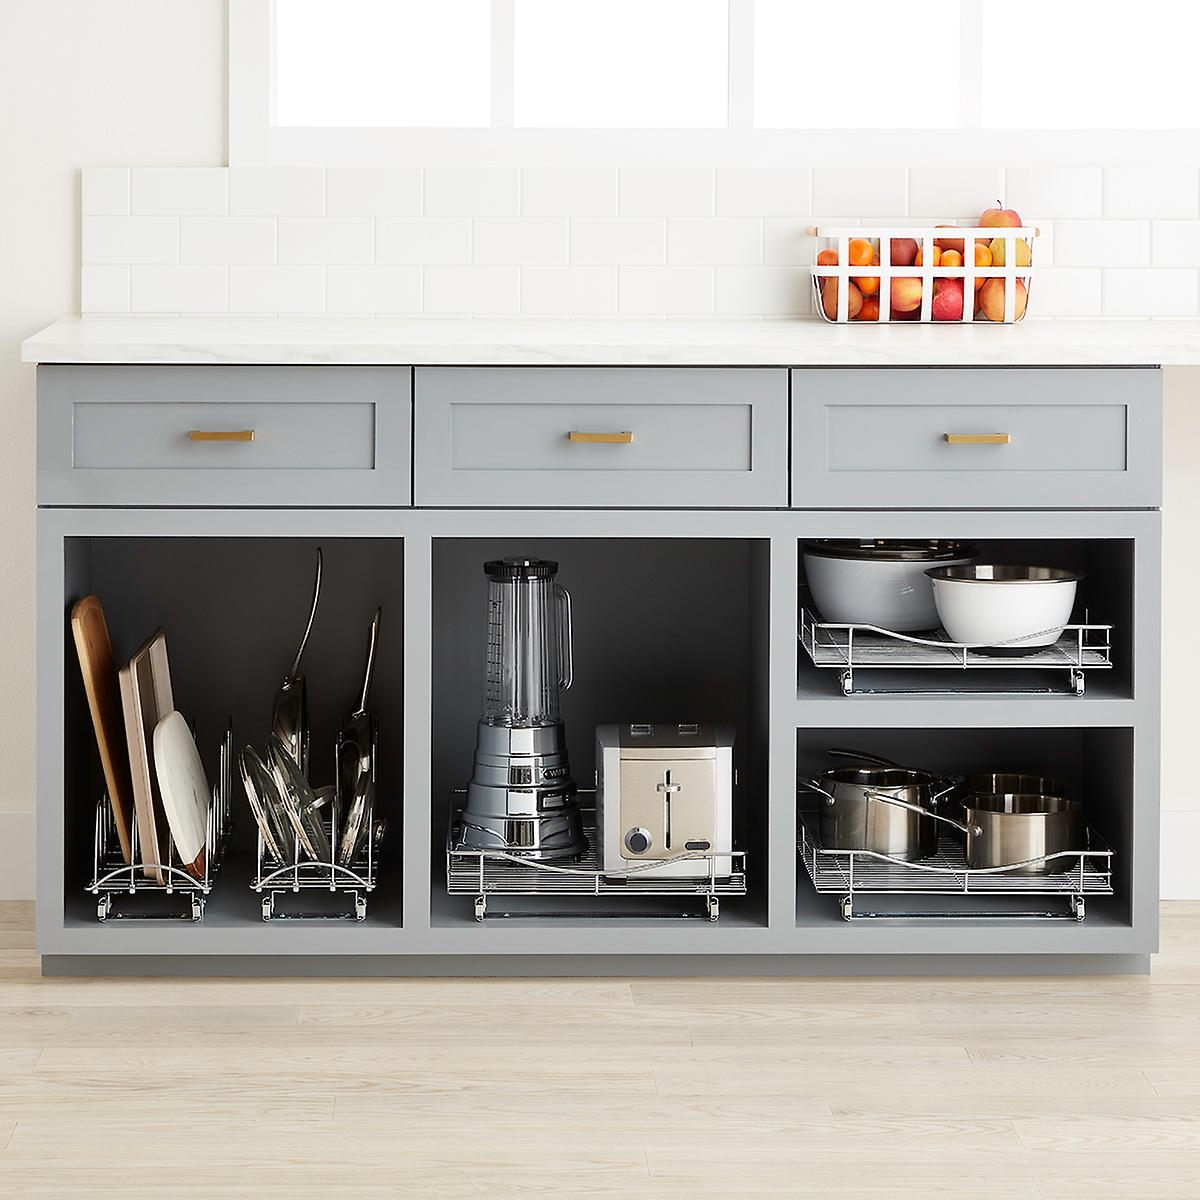 Pull Out Kitchen Cabinet Organizers: Lynk Chrome Pull-Out Cabinet Drawers